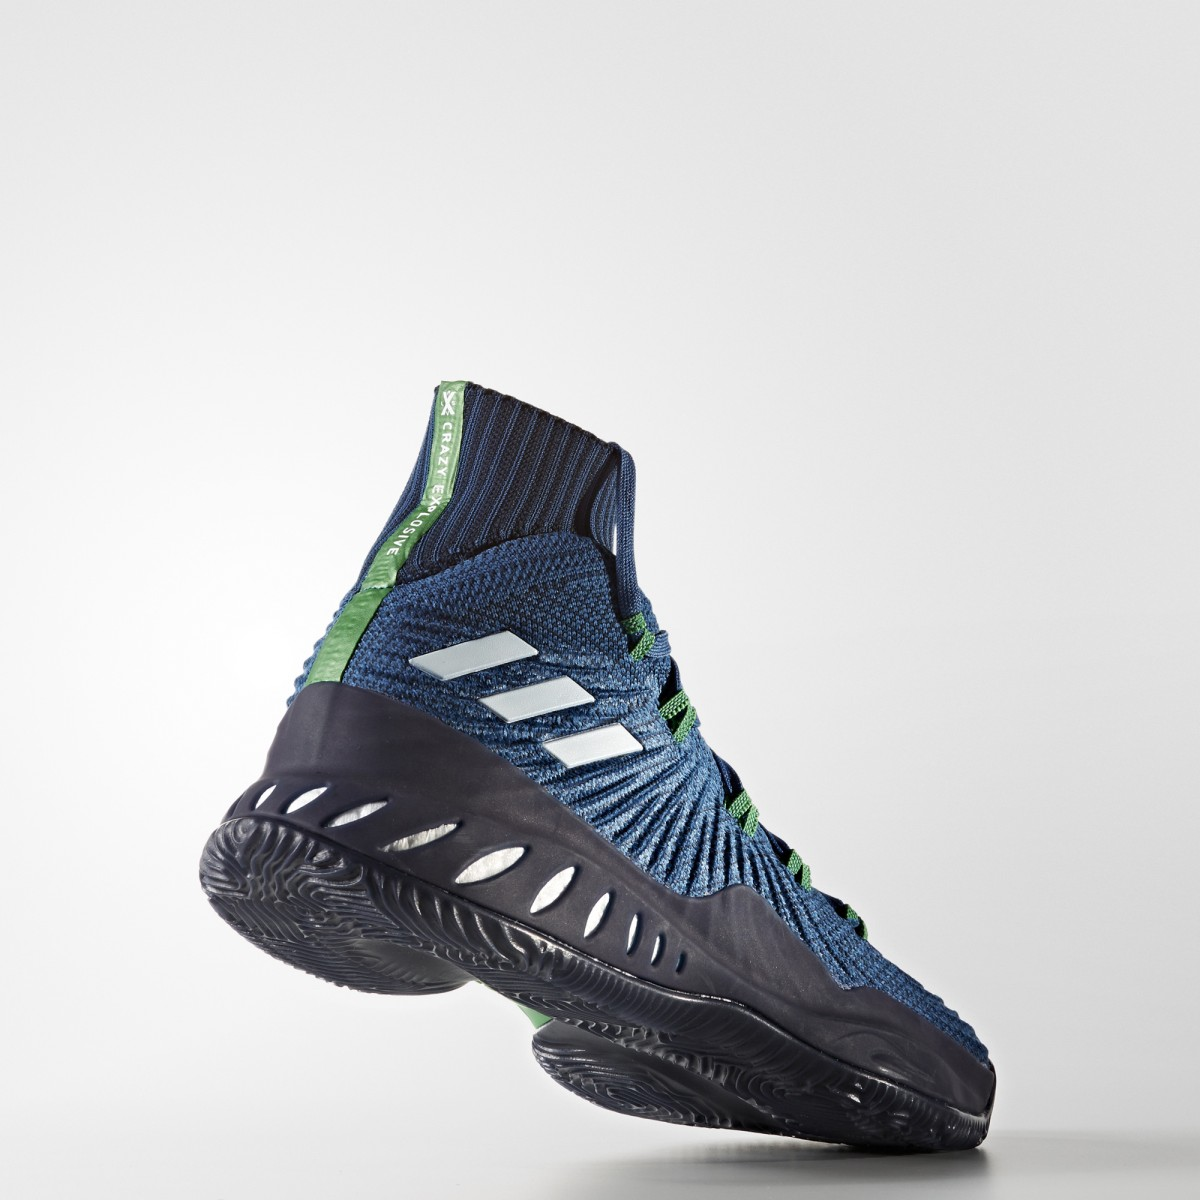 Adidas Crazy Explosive 2017 PK 'AW' BY4468